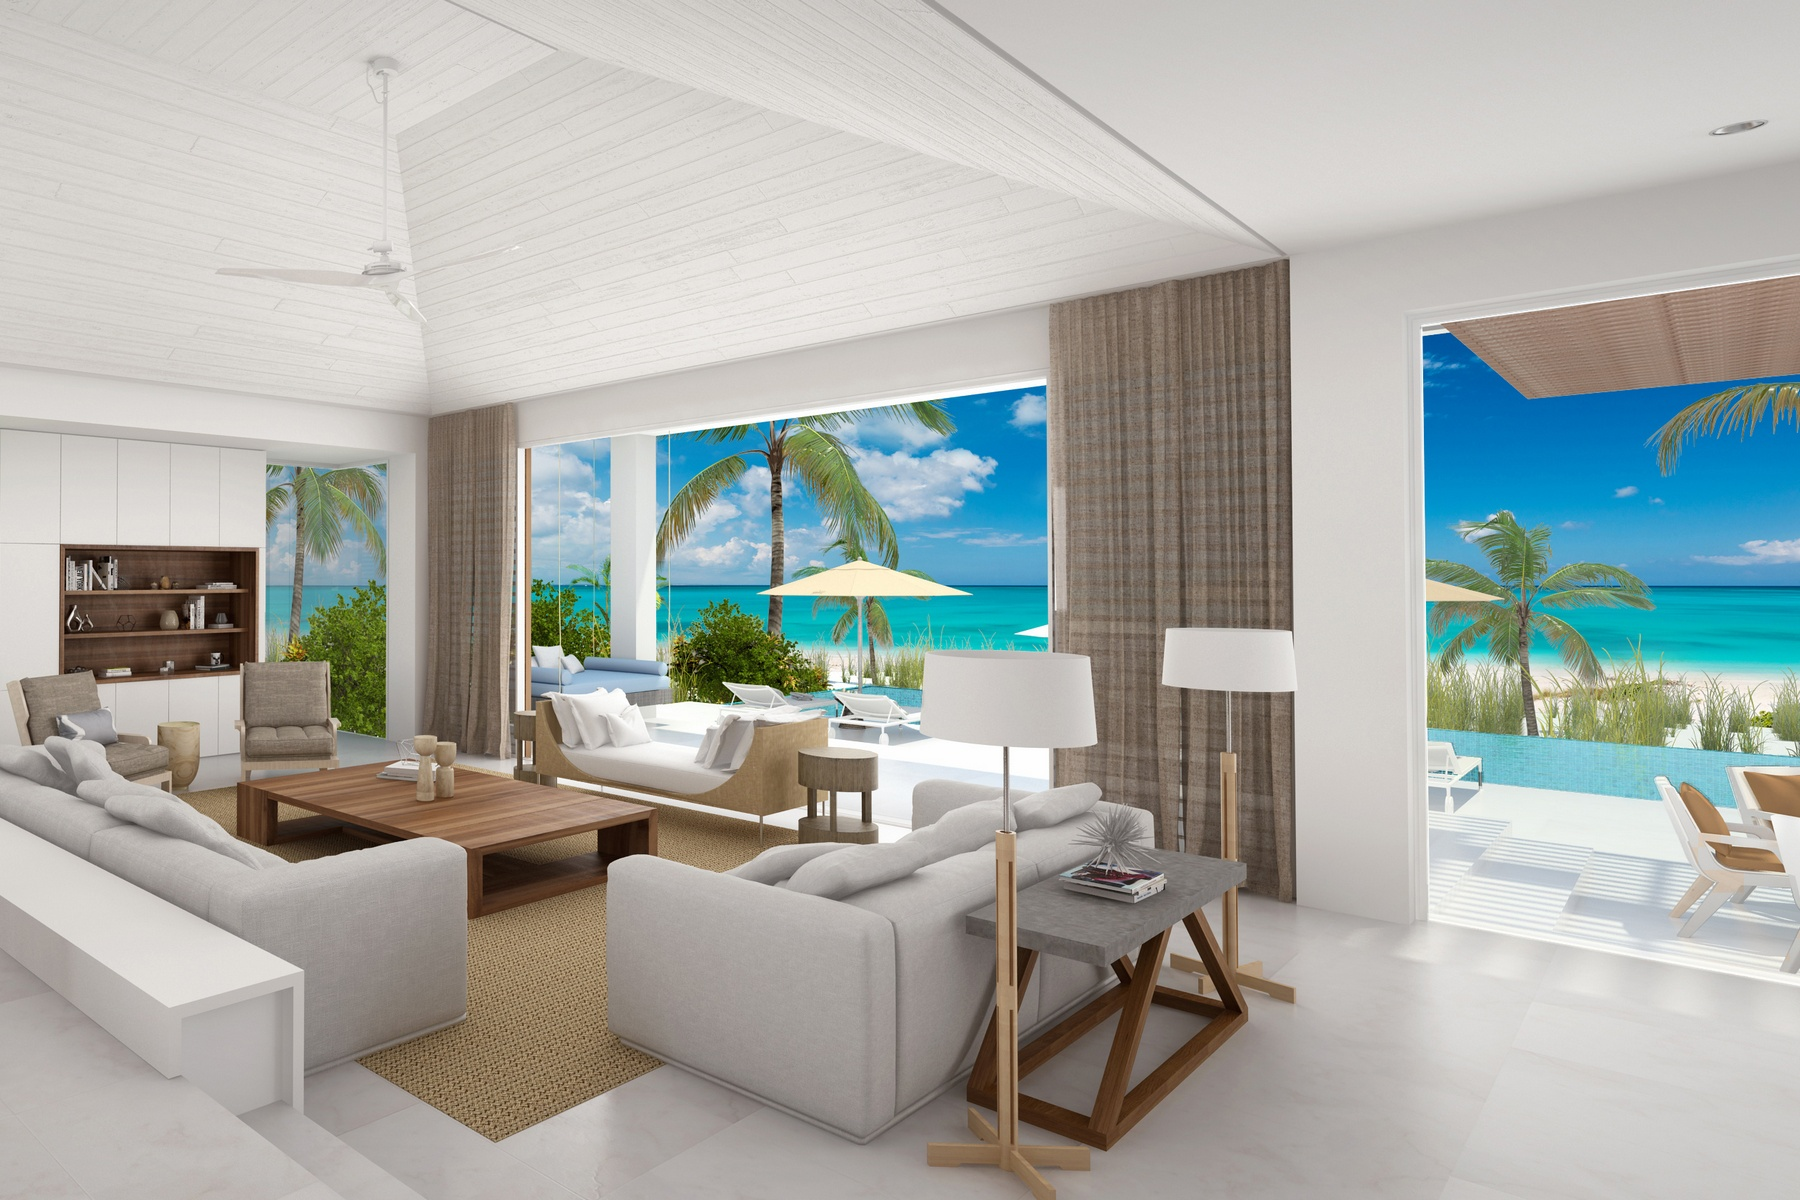 Single Family Home for Sale at BEACH ENCLAVE GRACE BAY Design A Oceanview Grace Bay, Providenciales TKCA 1ZZ Turks And Caicos Islands